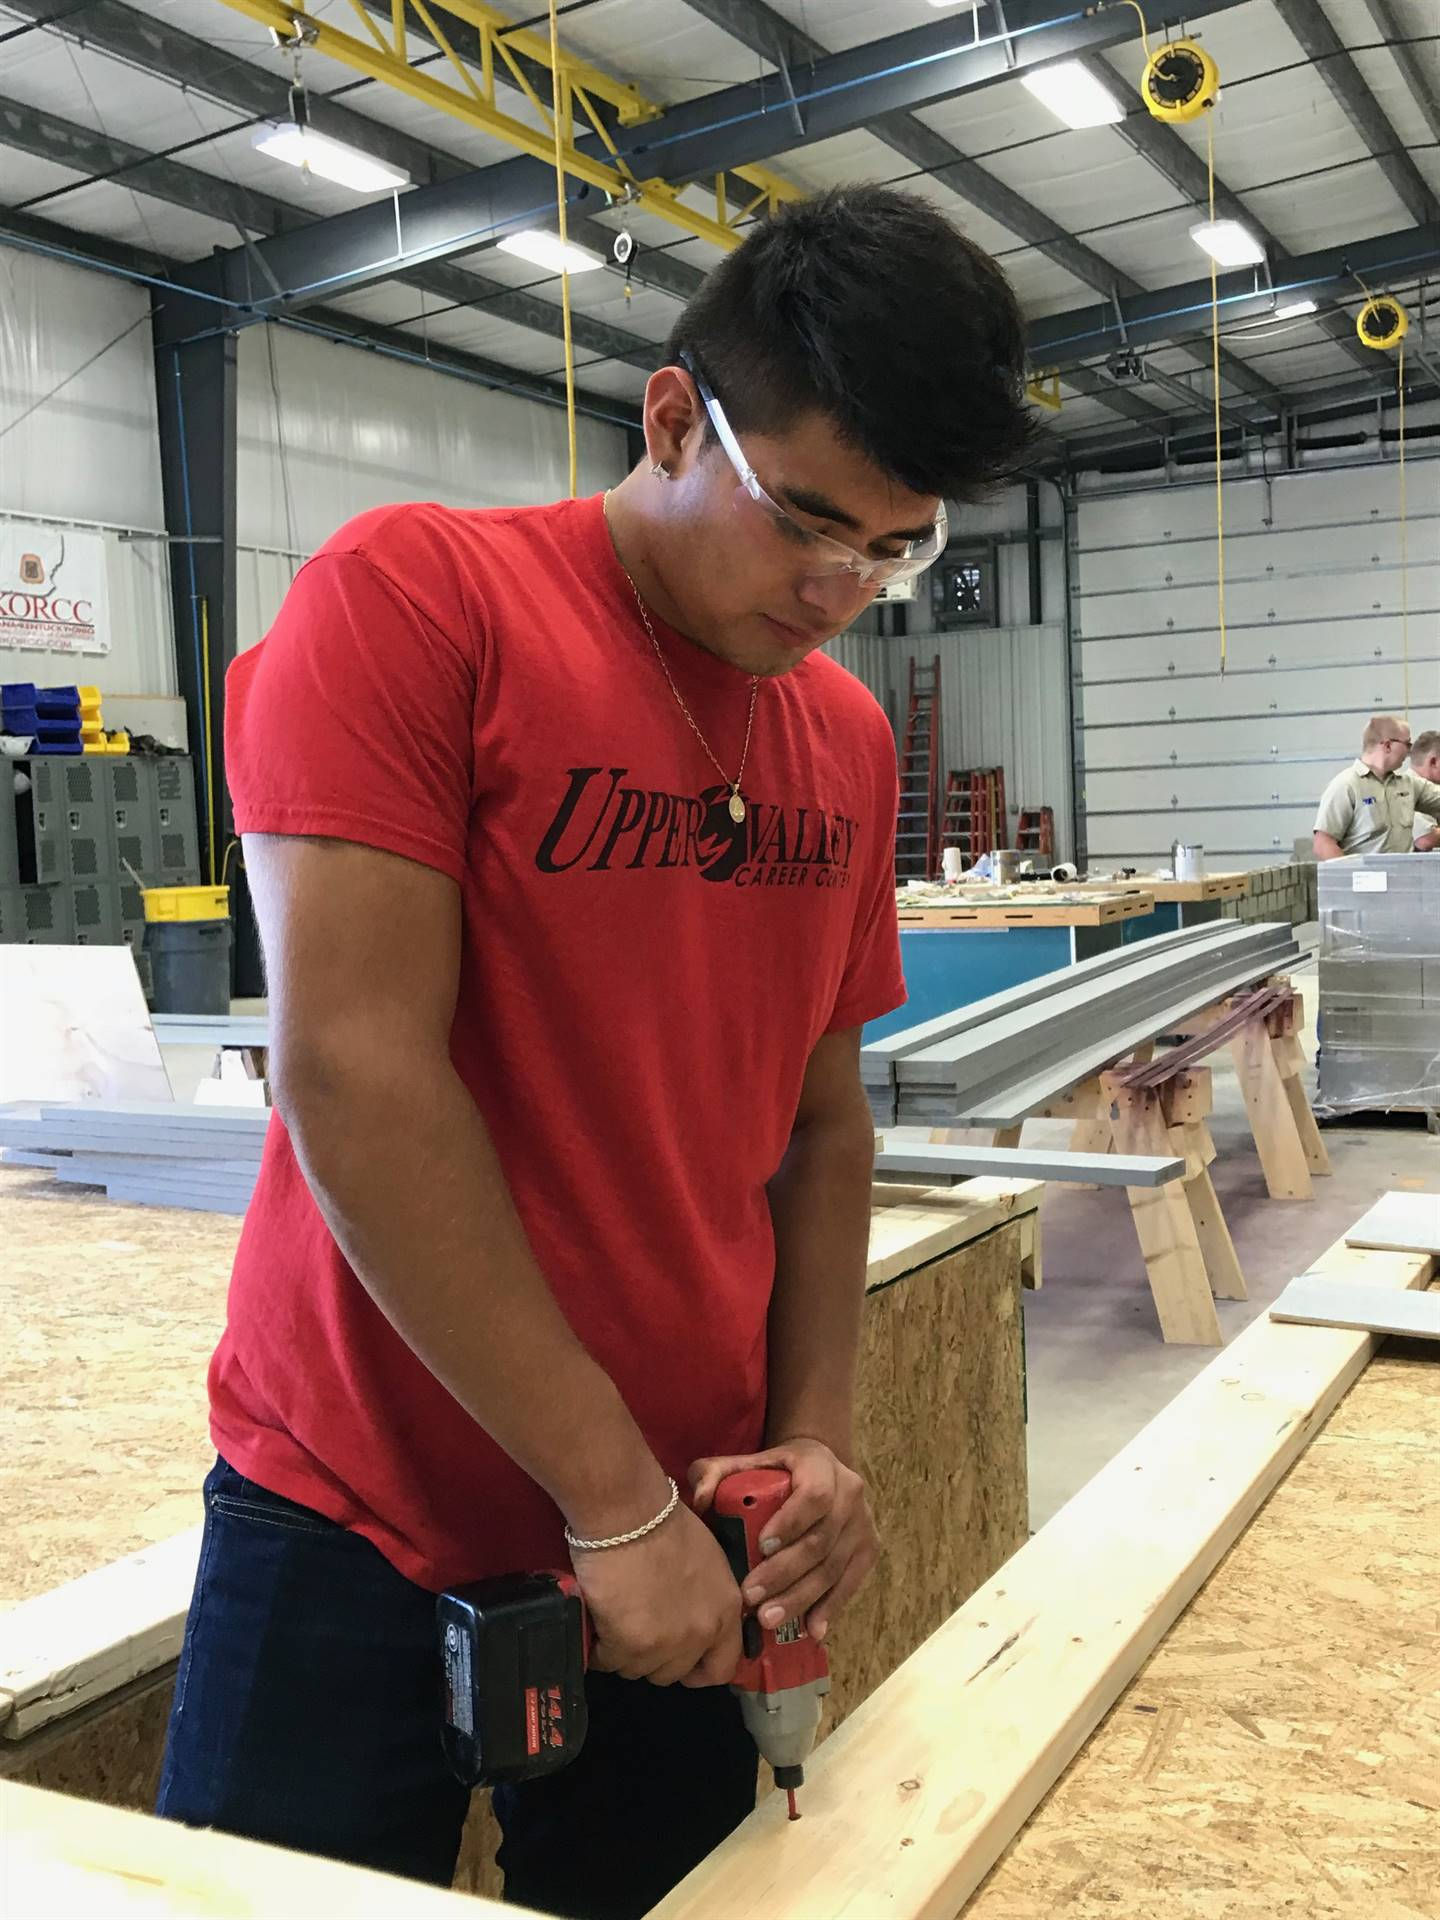 Student drilling nails in wood